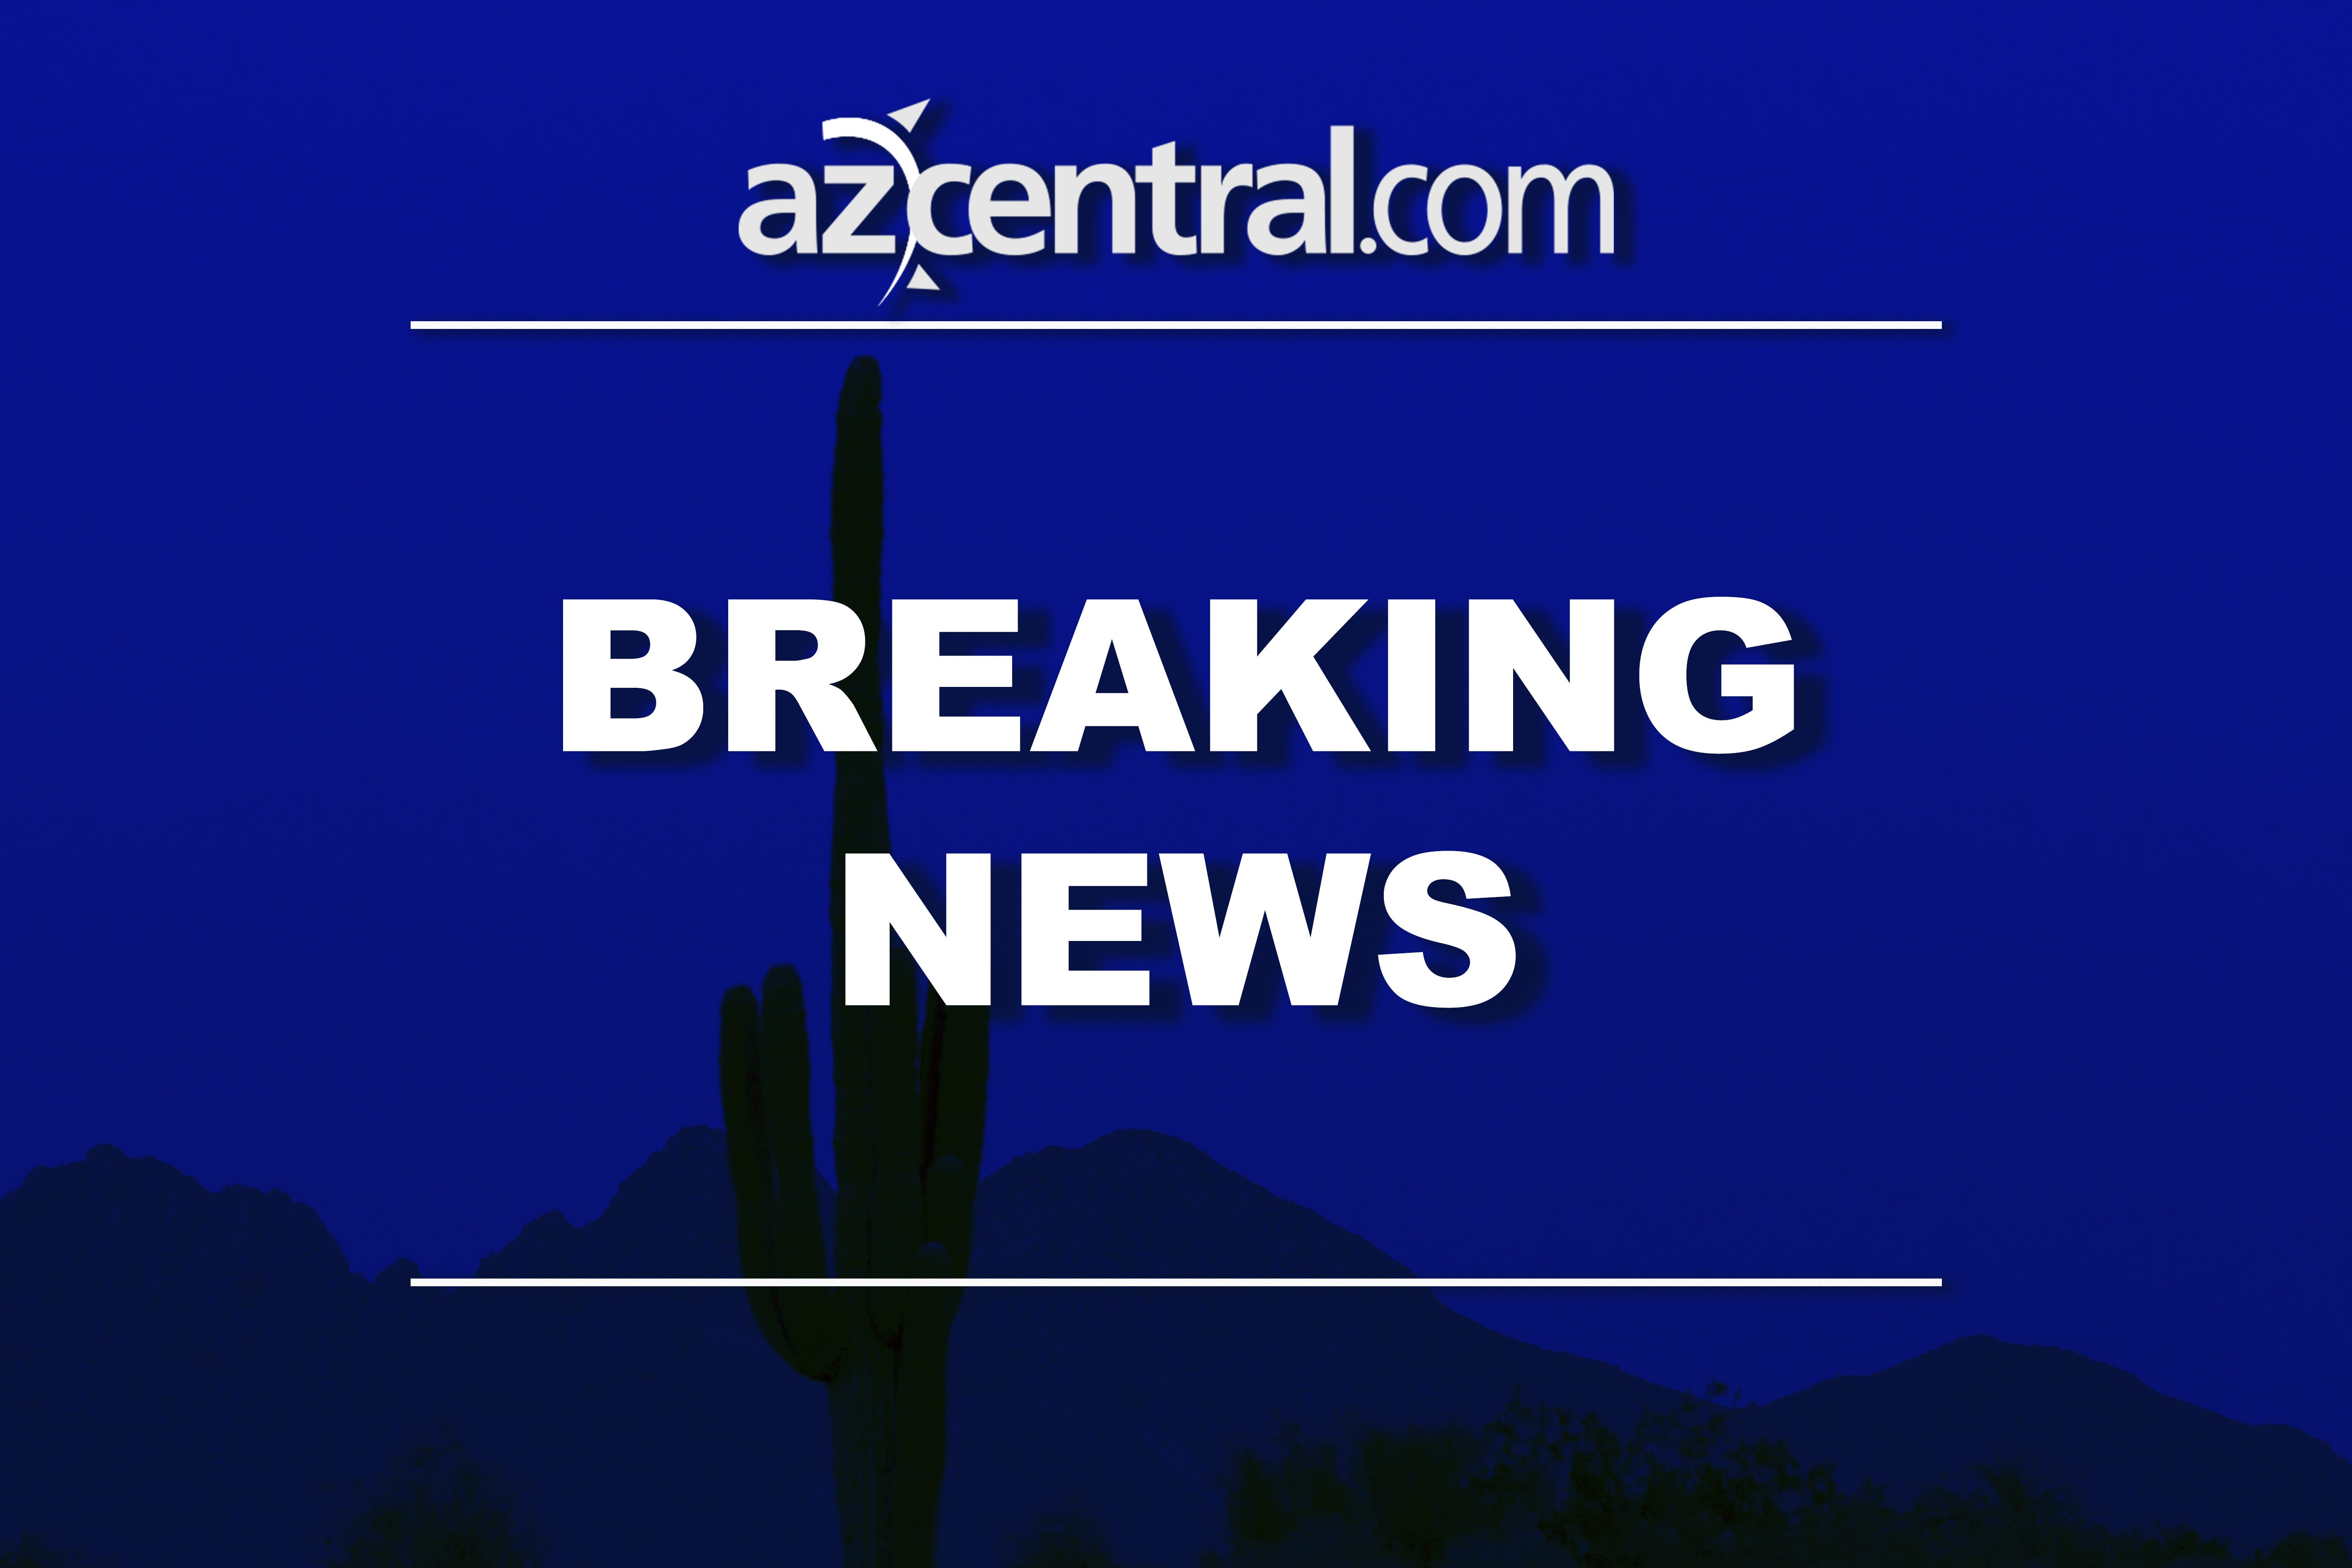 Phoenix police: 35-year-old man died while in custody | Arizona Central